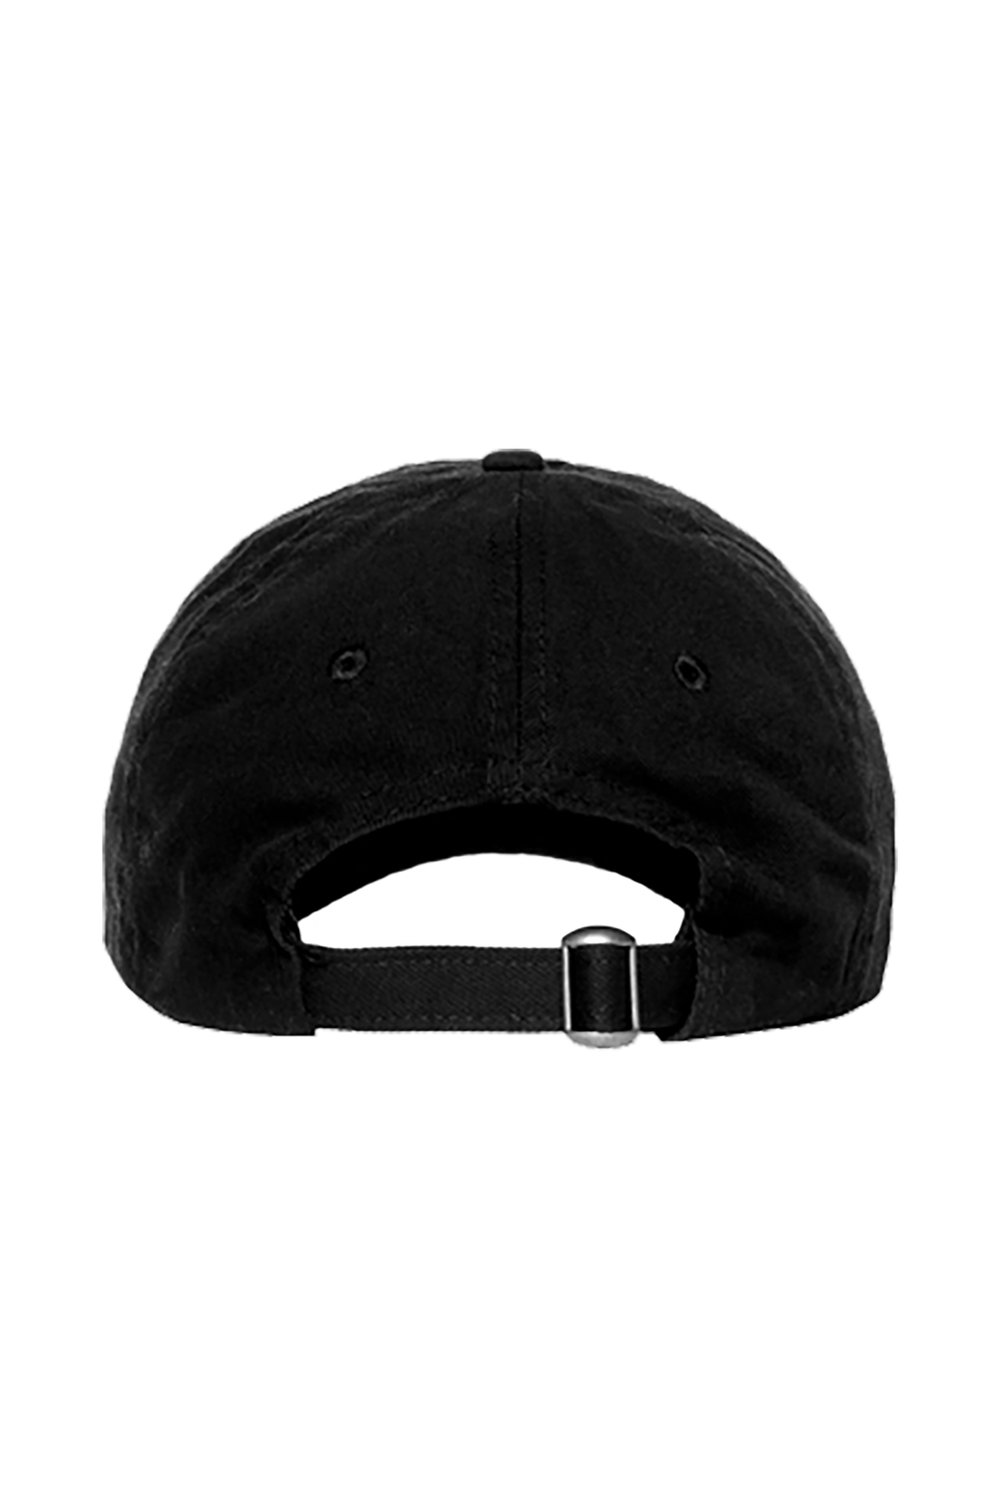 Zeus Step-Dad Hat - Black/White